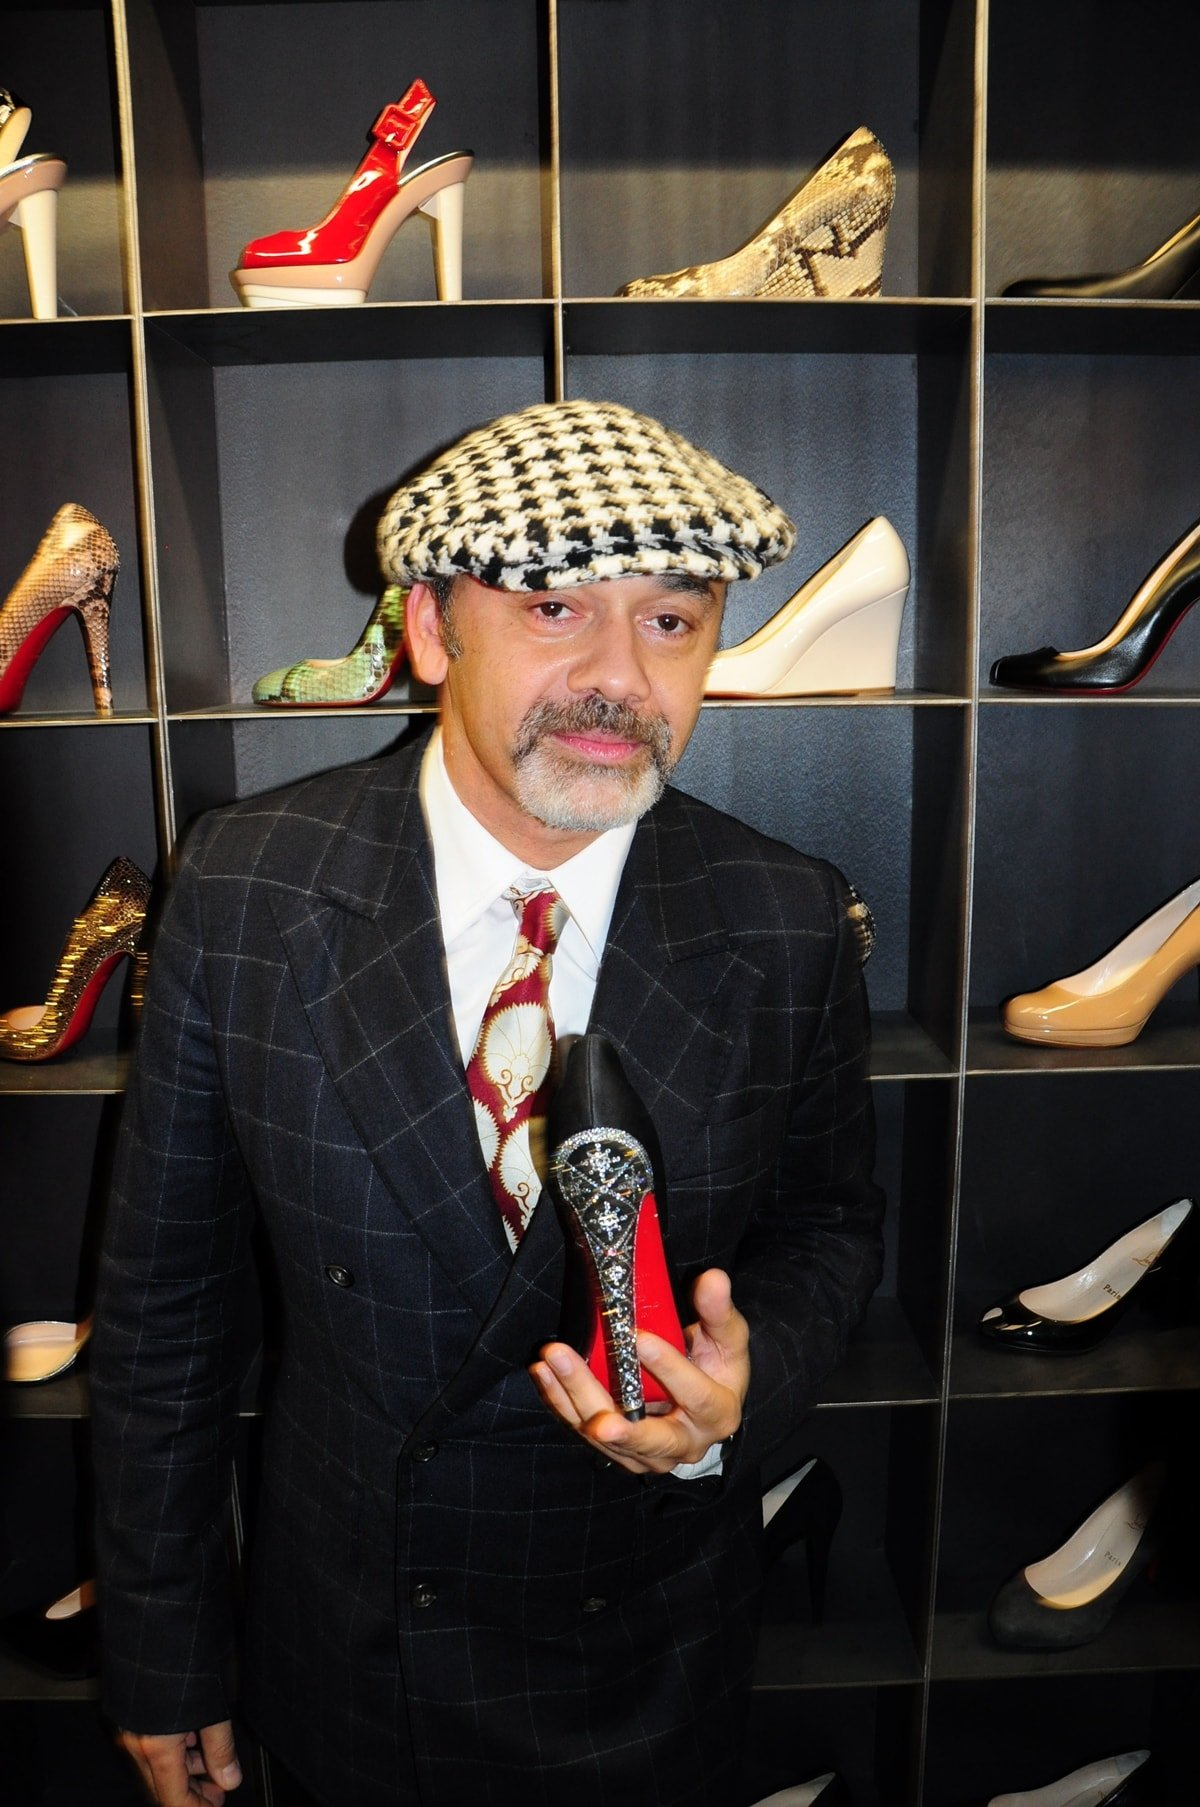 Christian Louboutin promoting his red sole shoes in Berlin